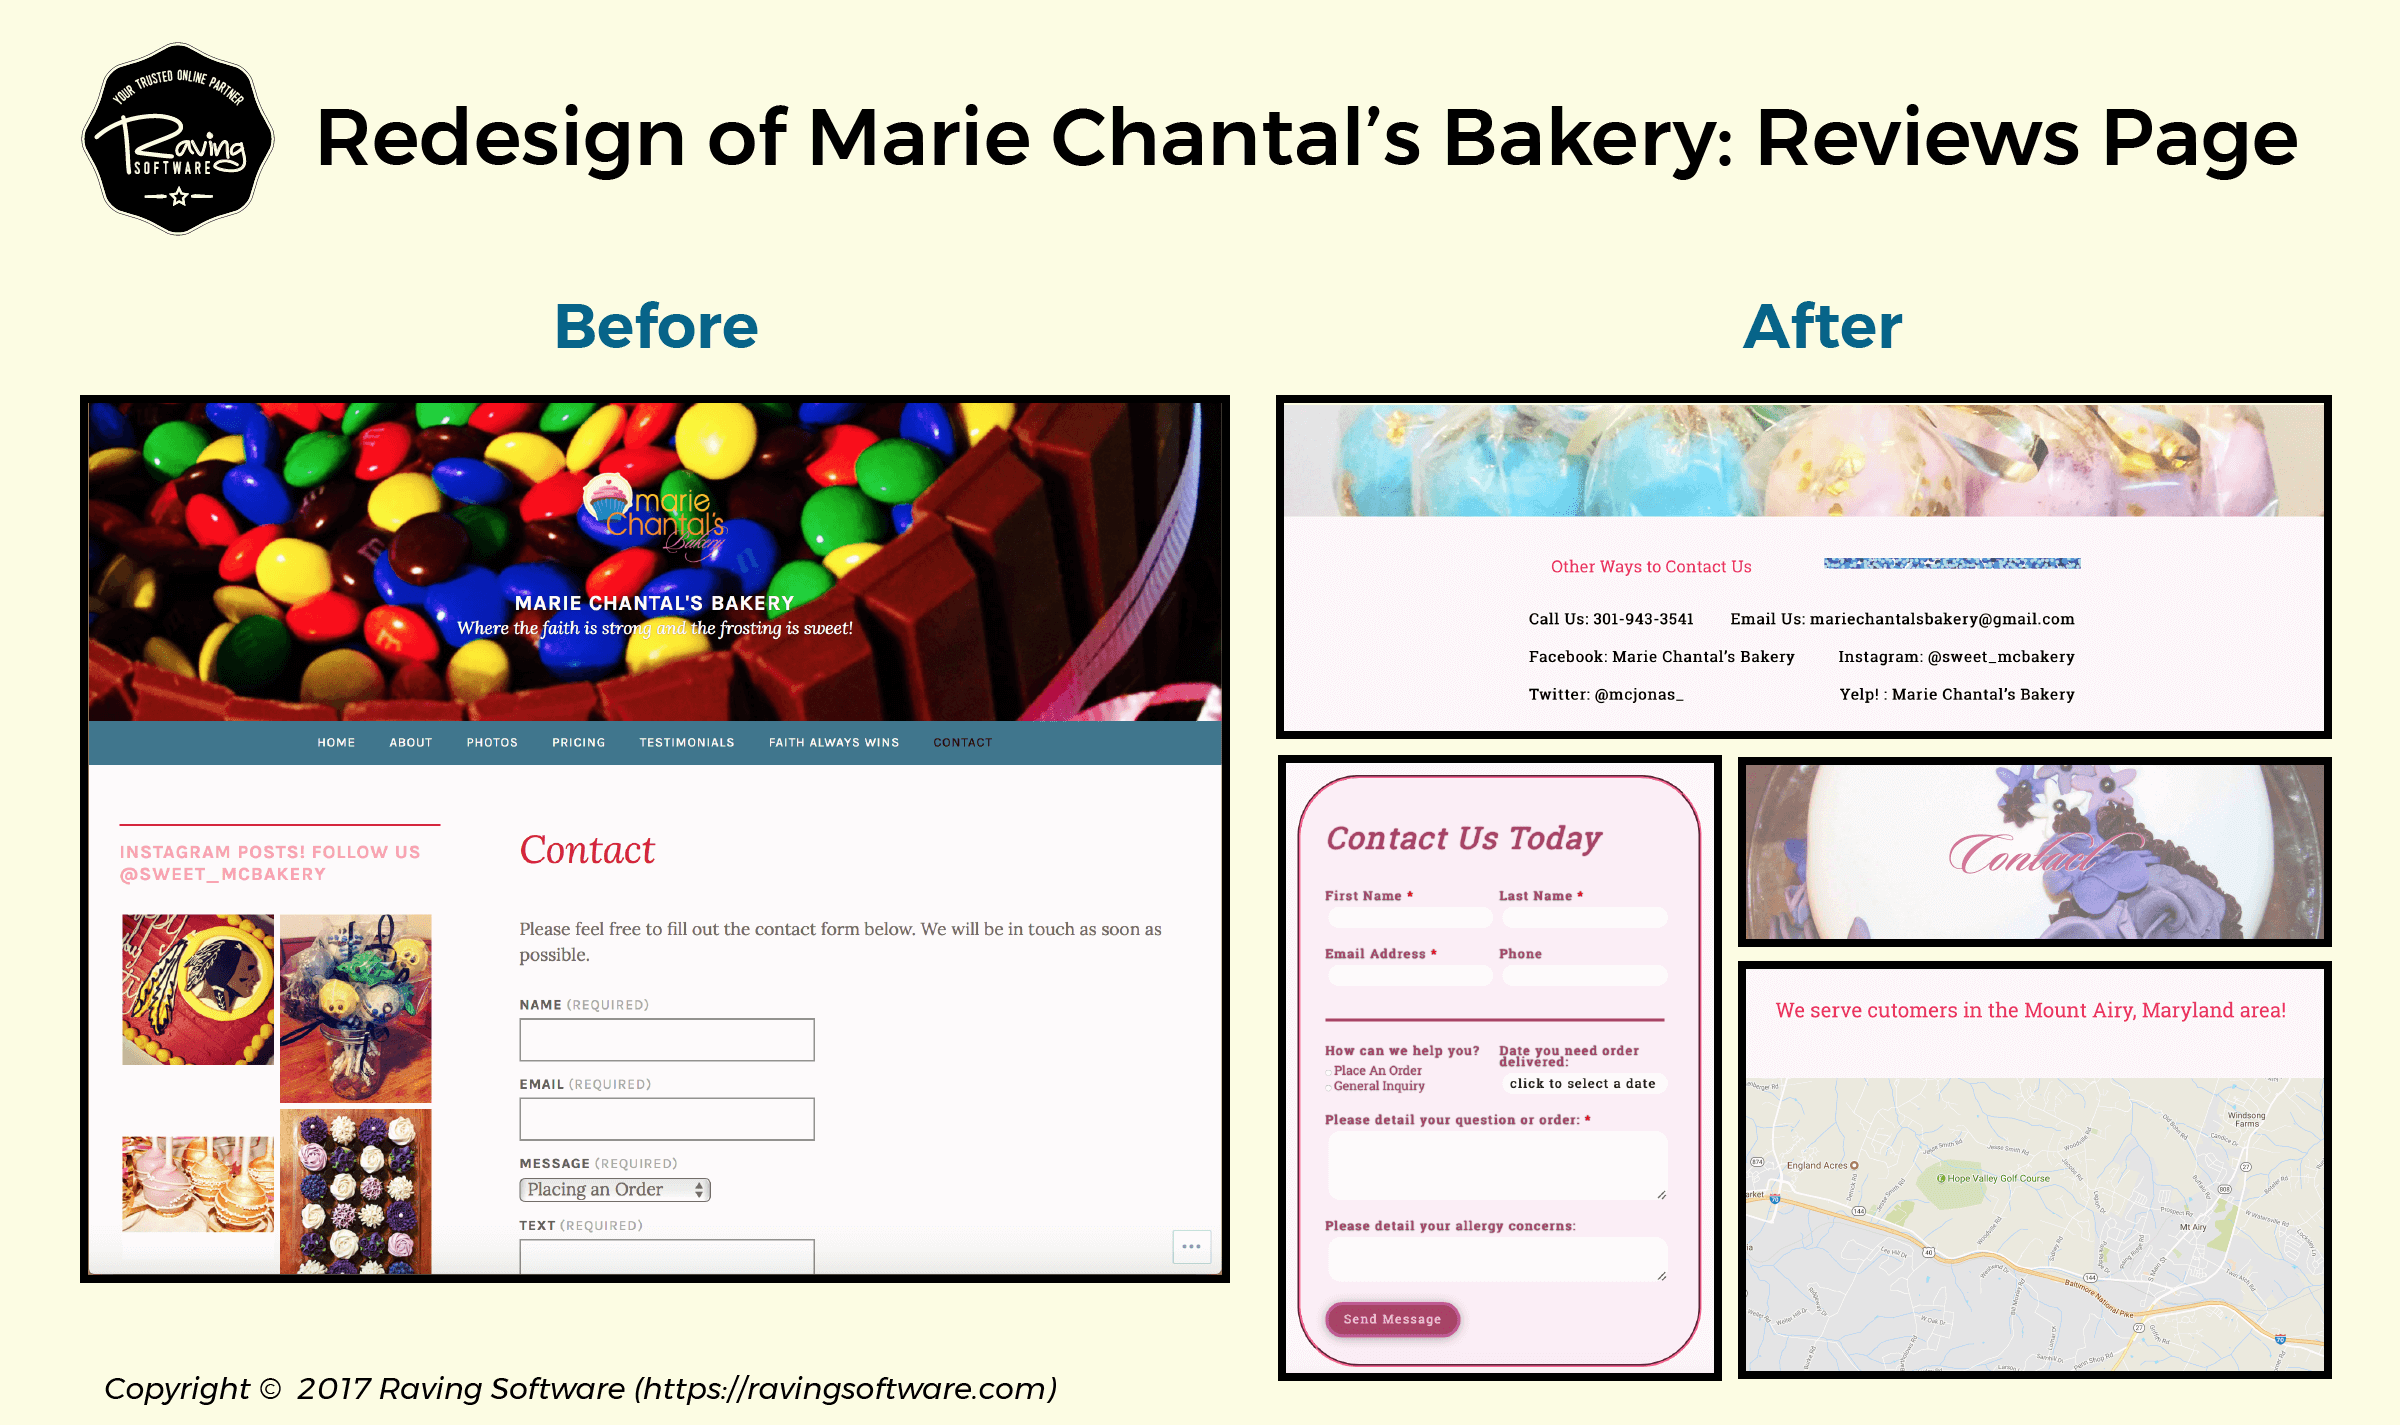 Before and After on Marie Chantal's Bakery website redesign for the contact page.